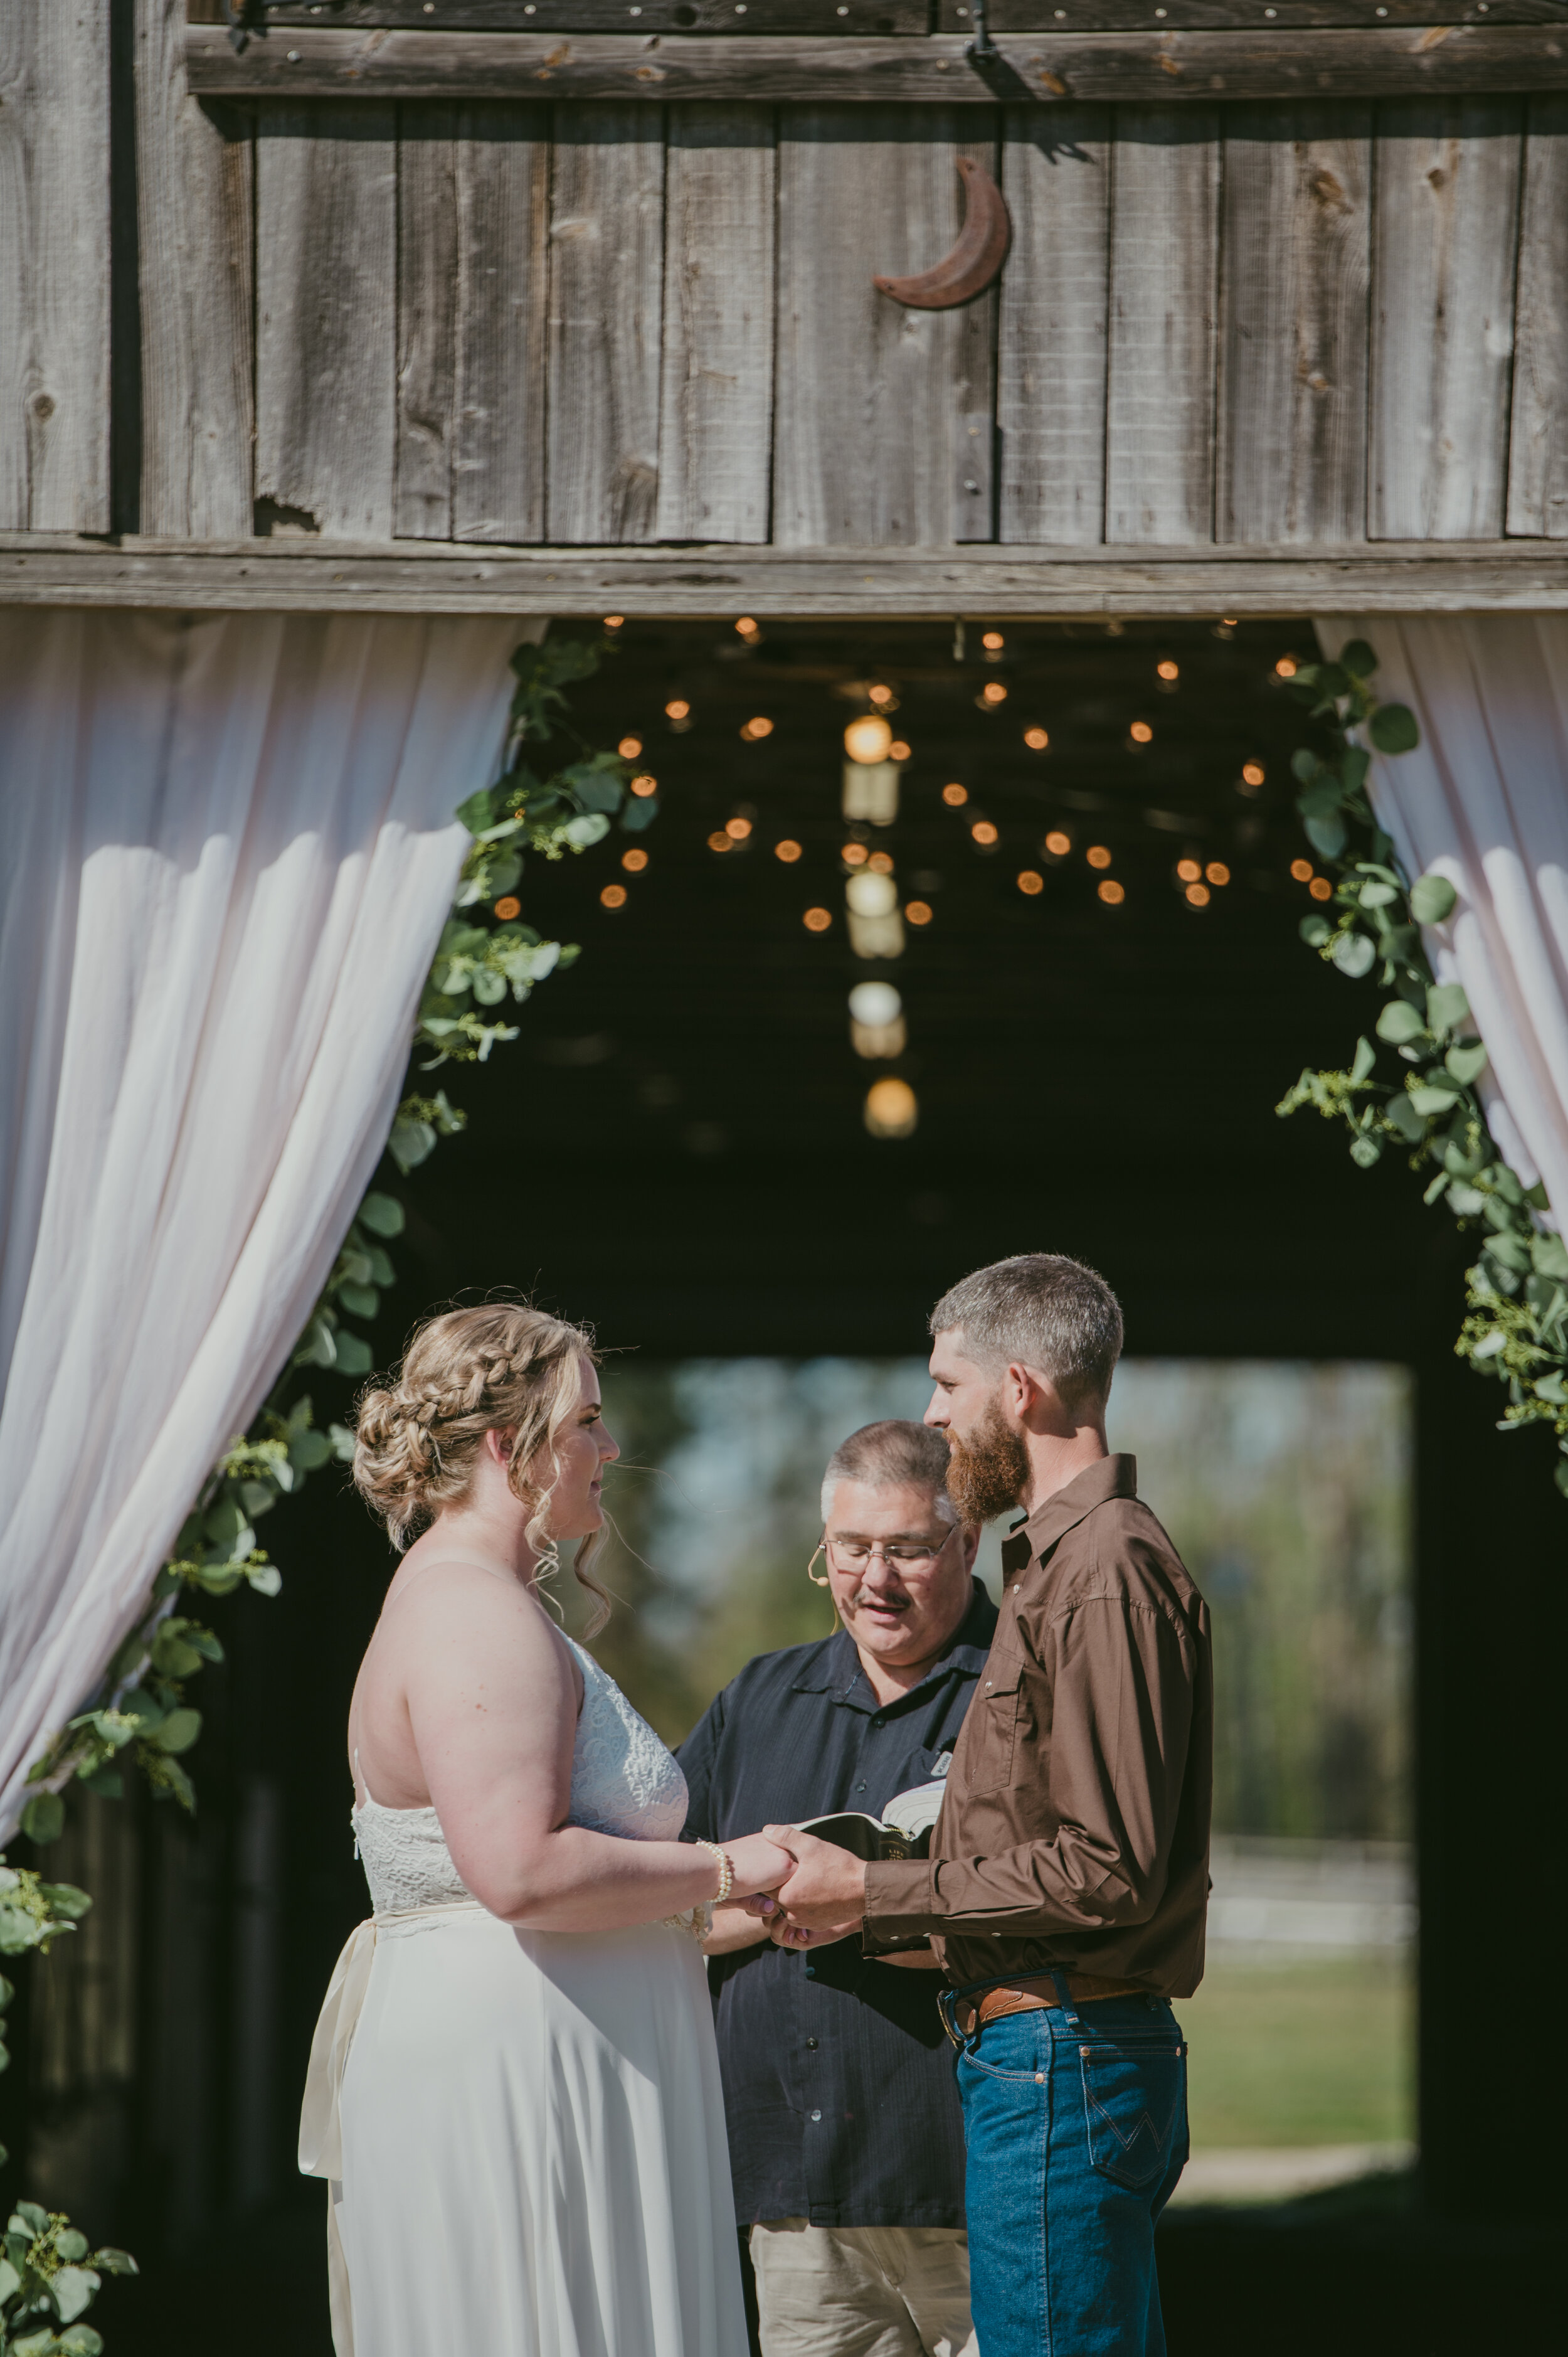 Diana + Michael   A Jacksonville, NC Wedding at Equine Country ...